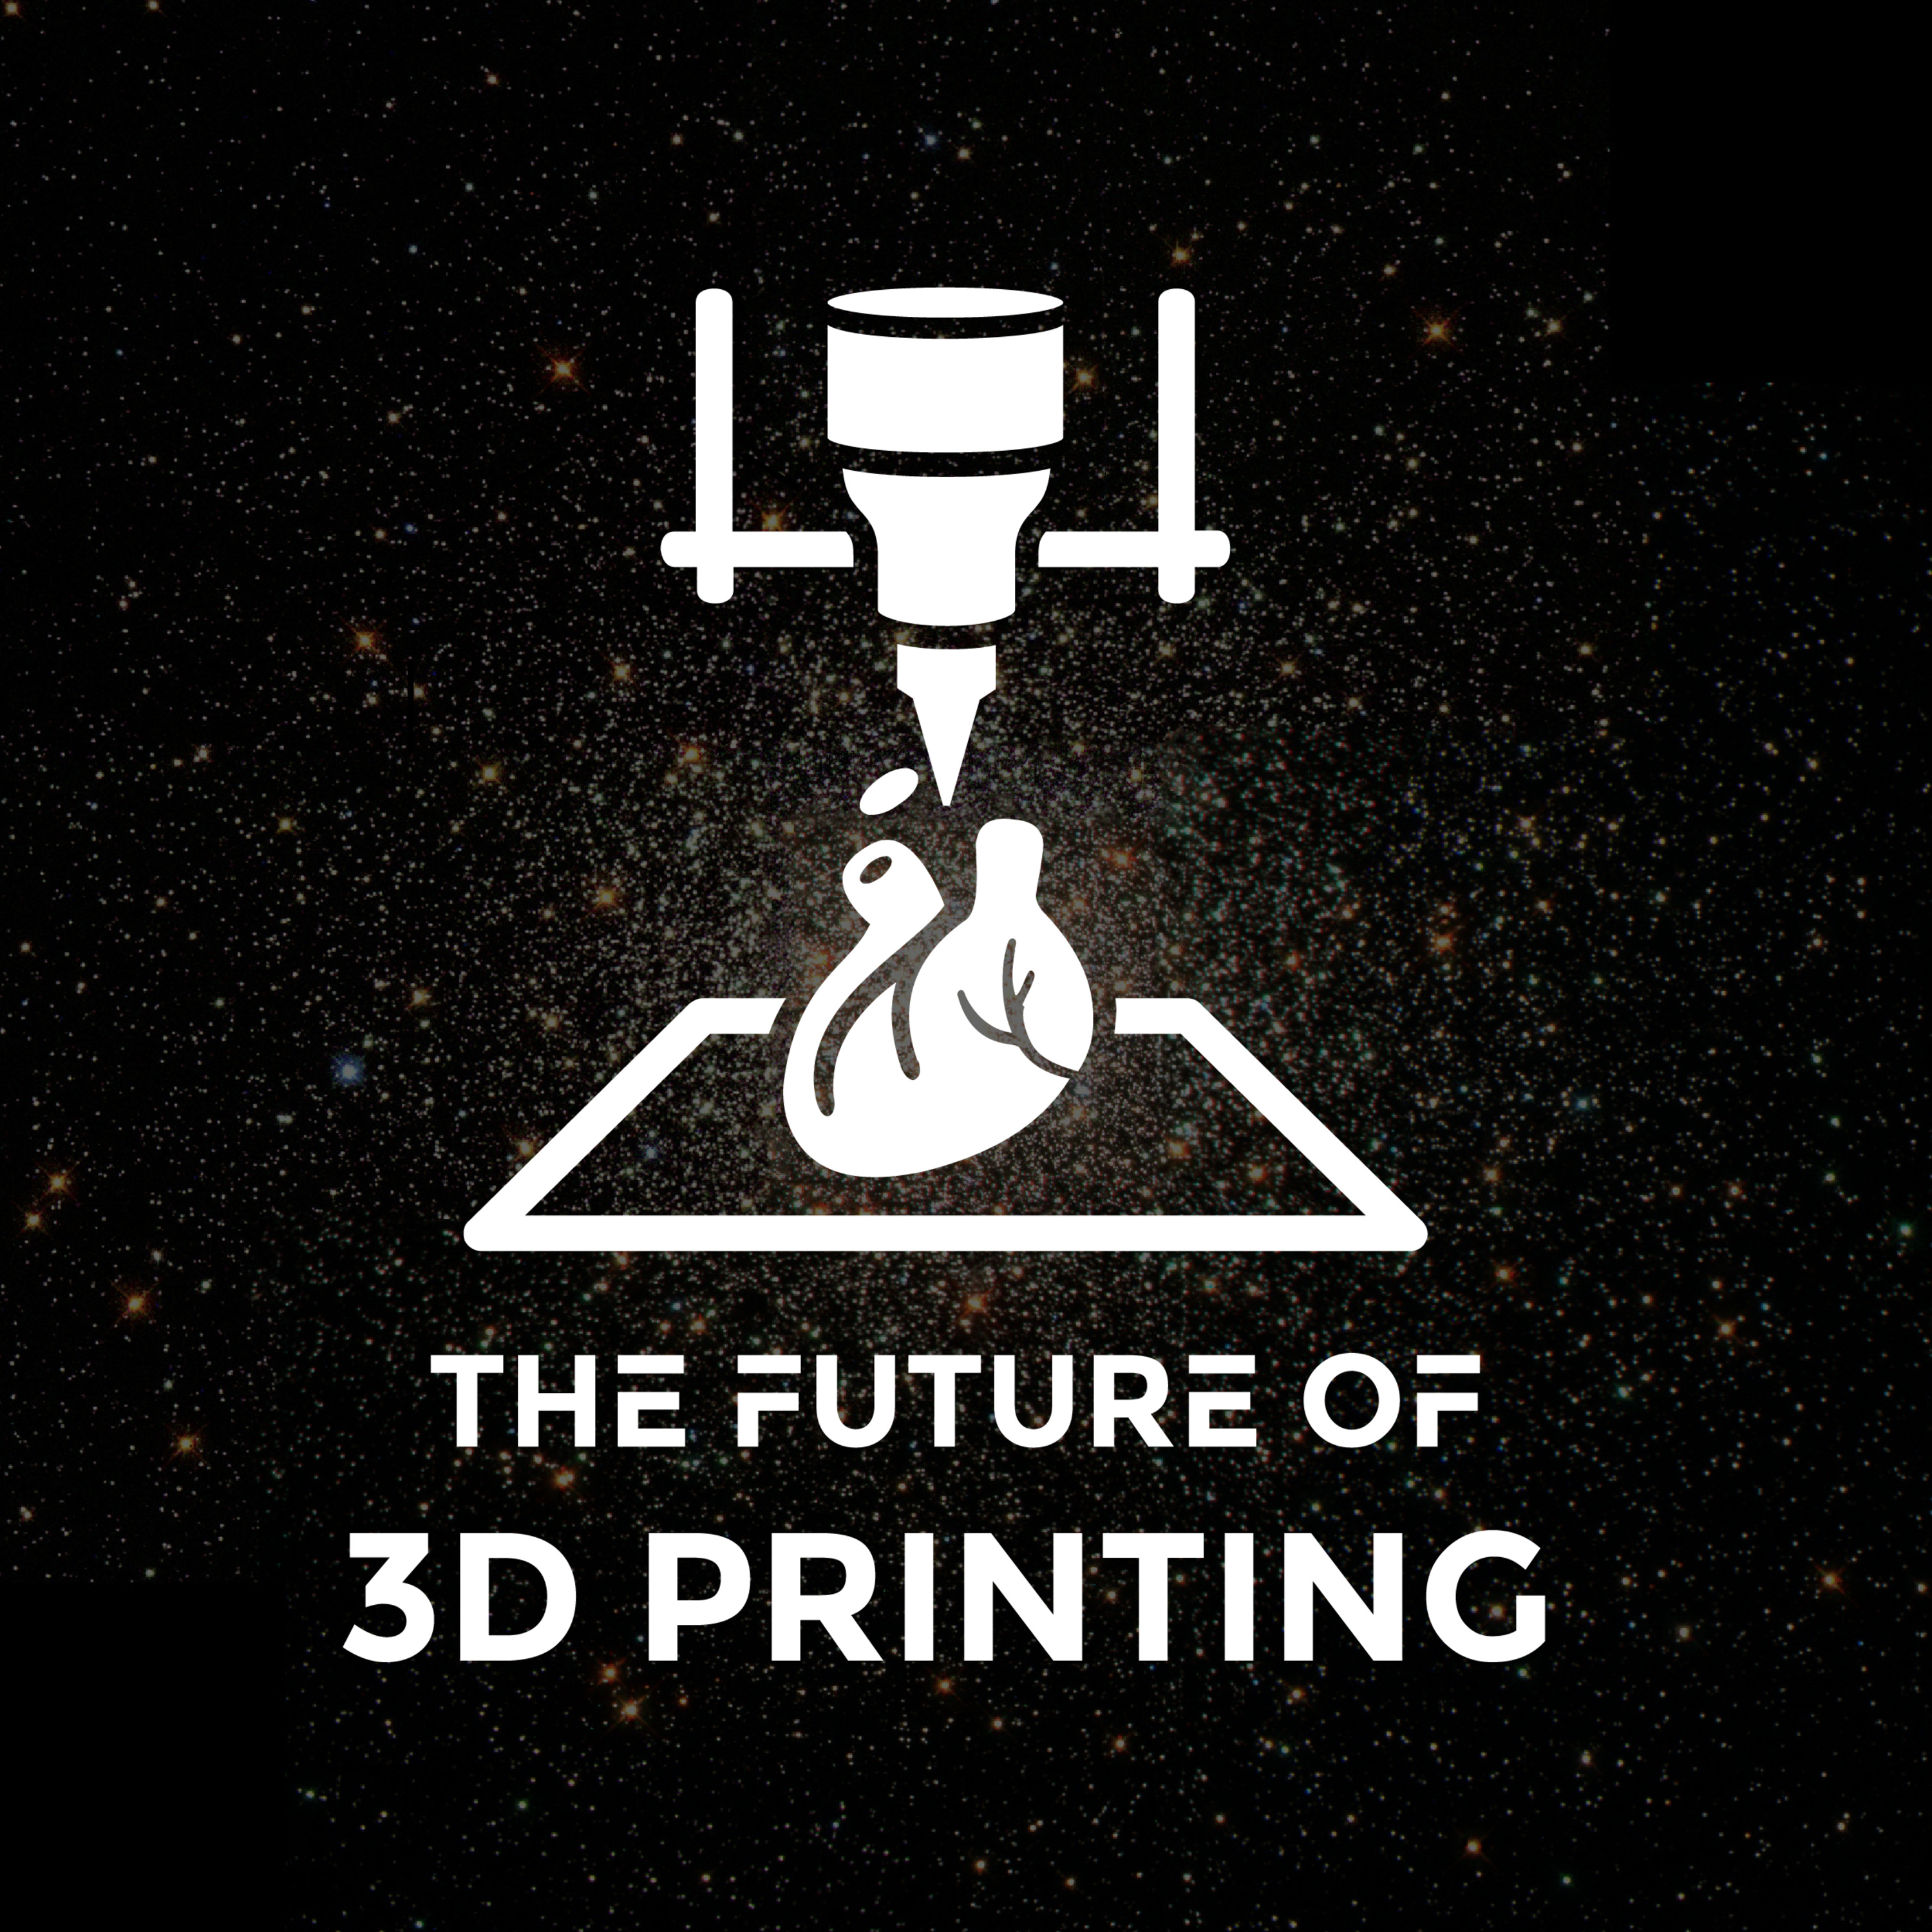 Ep. 49 - The Future of 3D Printing